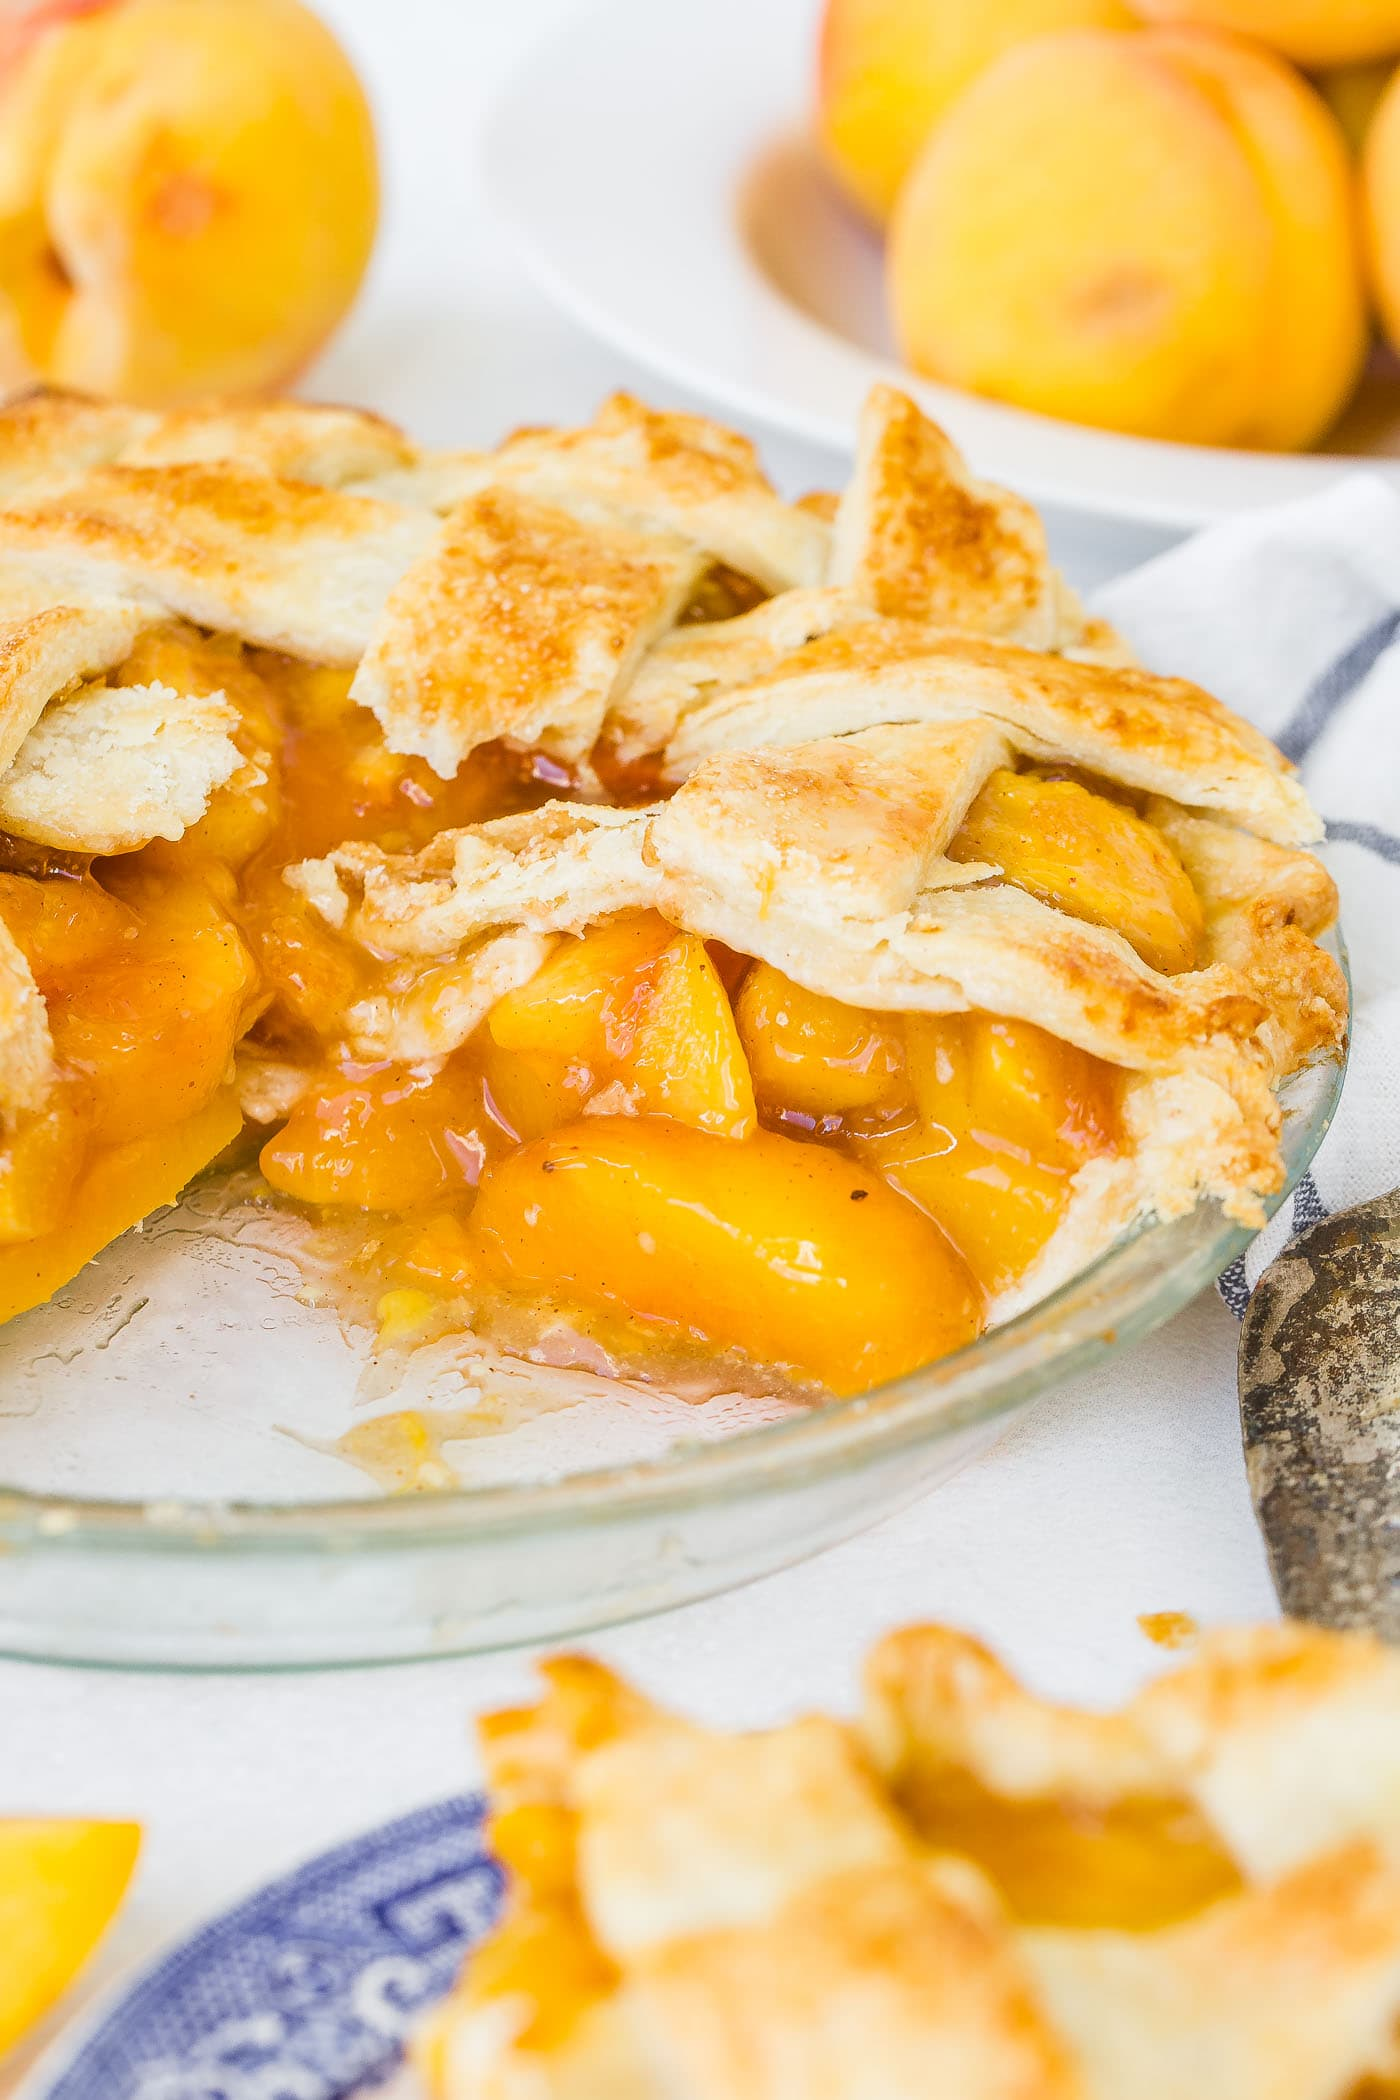 A photo of a fresh peach pie with a couple of slices missing and one slice ready to serve.